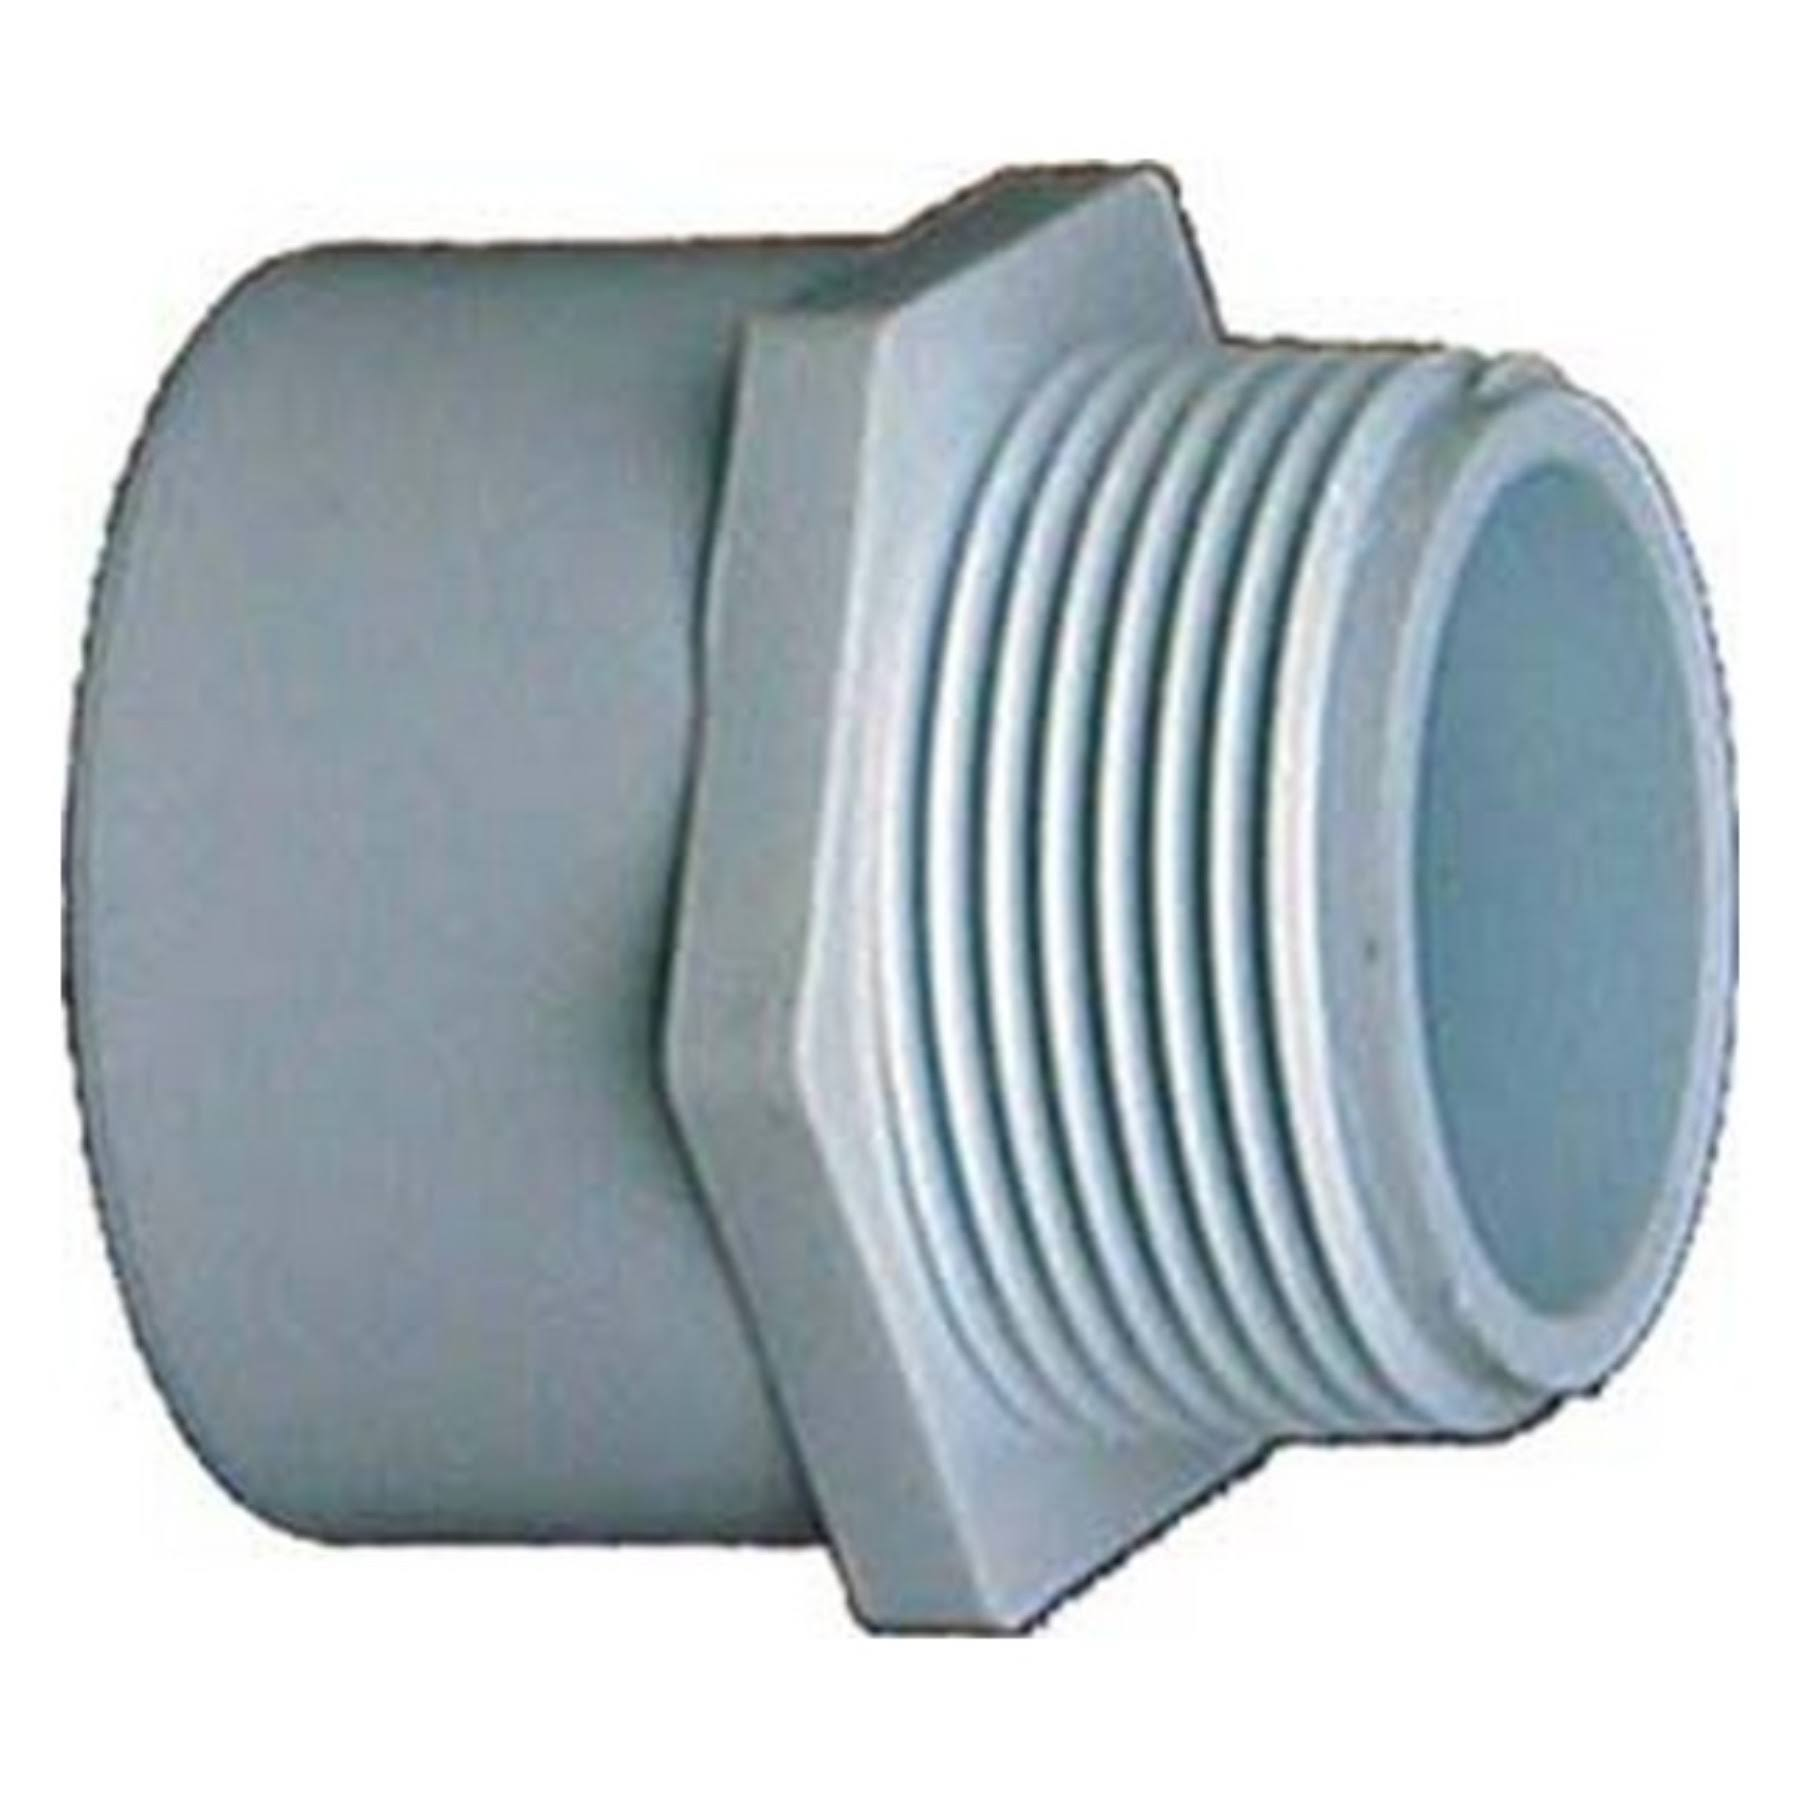 "Genova 30457 Male Adapter Pressure Fitting - 1/2""x3/4"""